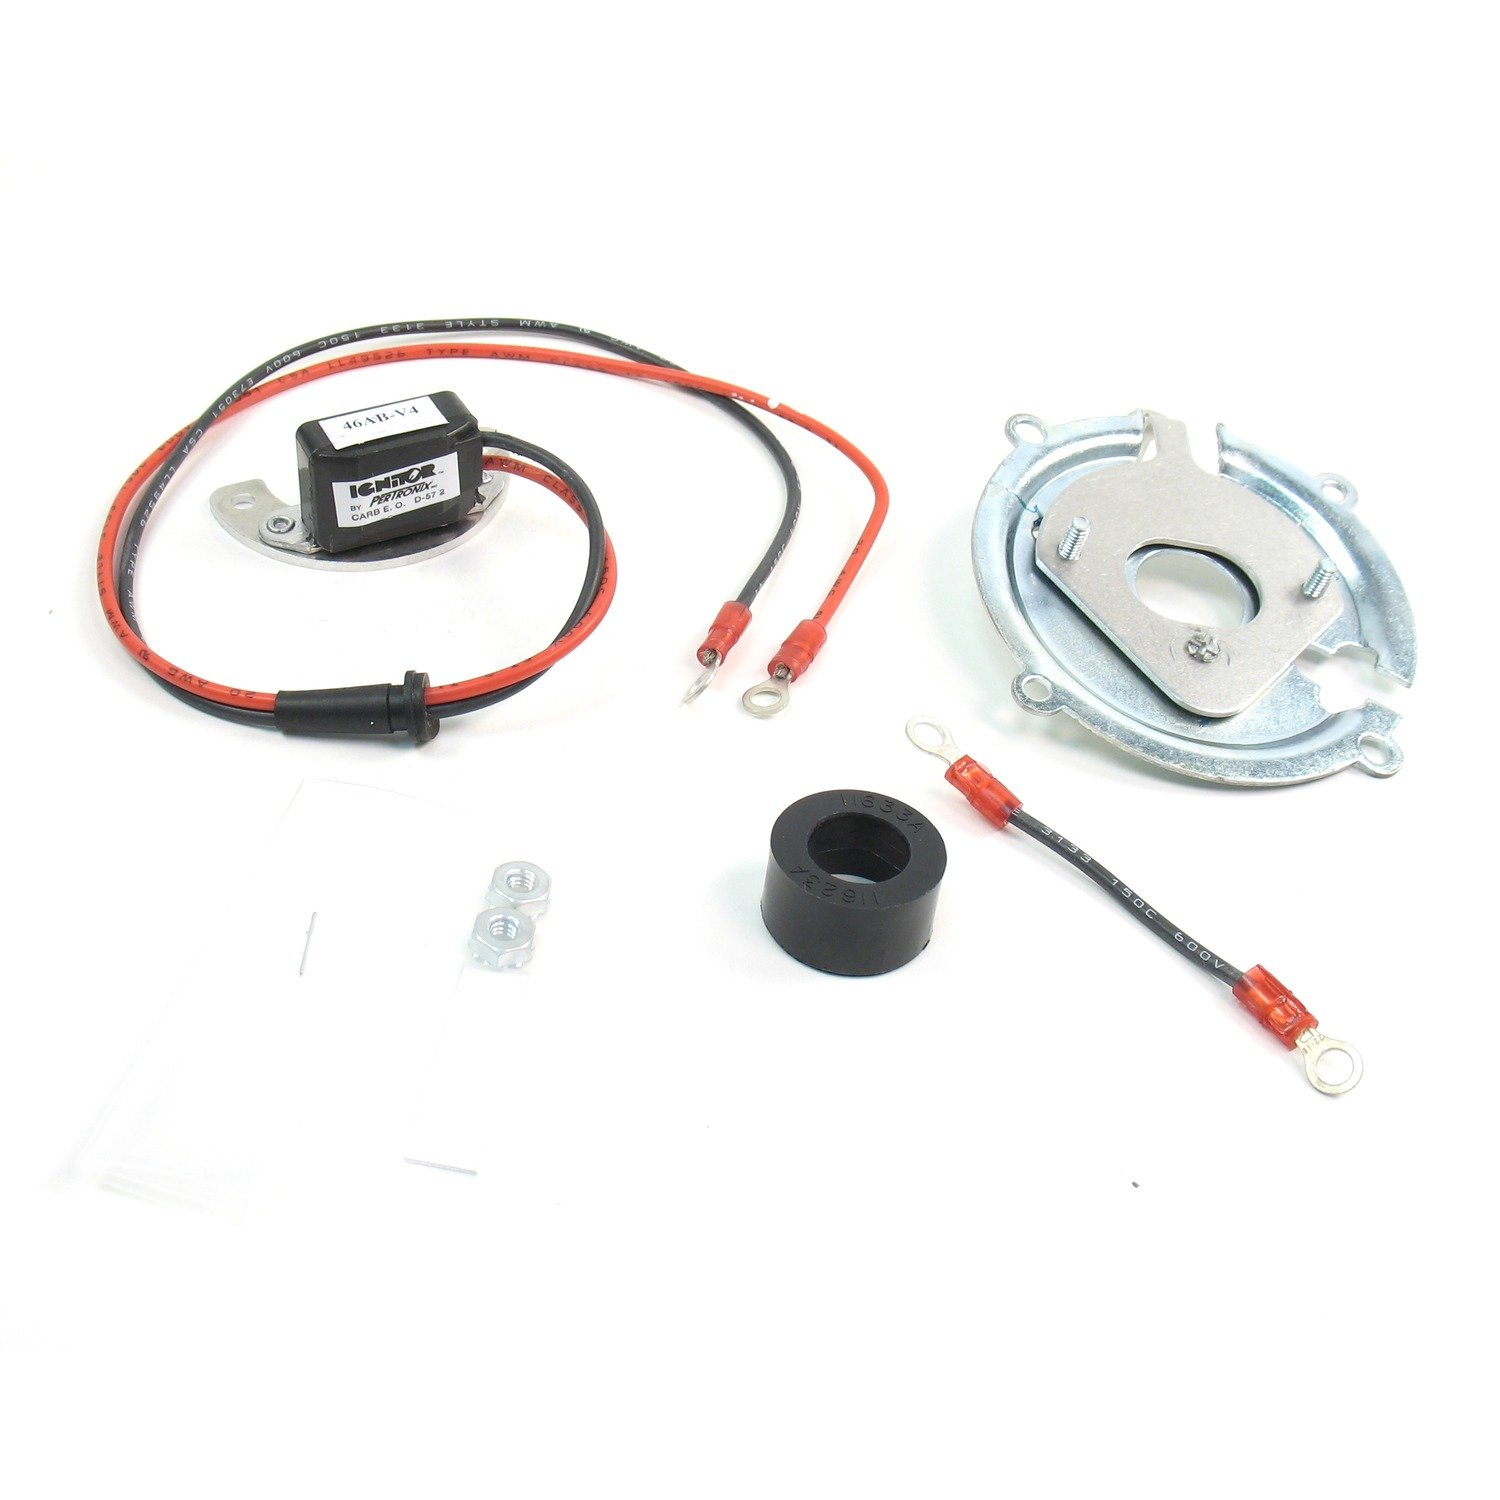 PerTronix 1162A Ignitor for Delco 6 Cylinder with Vacuum Advance by Pertronix